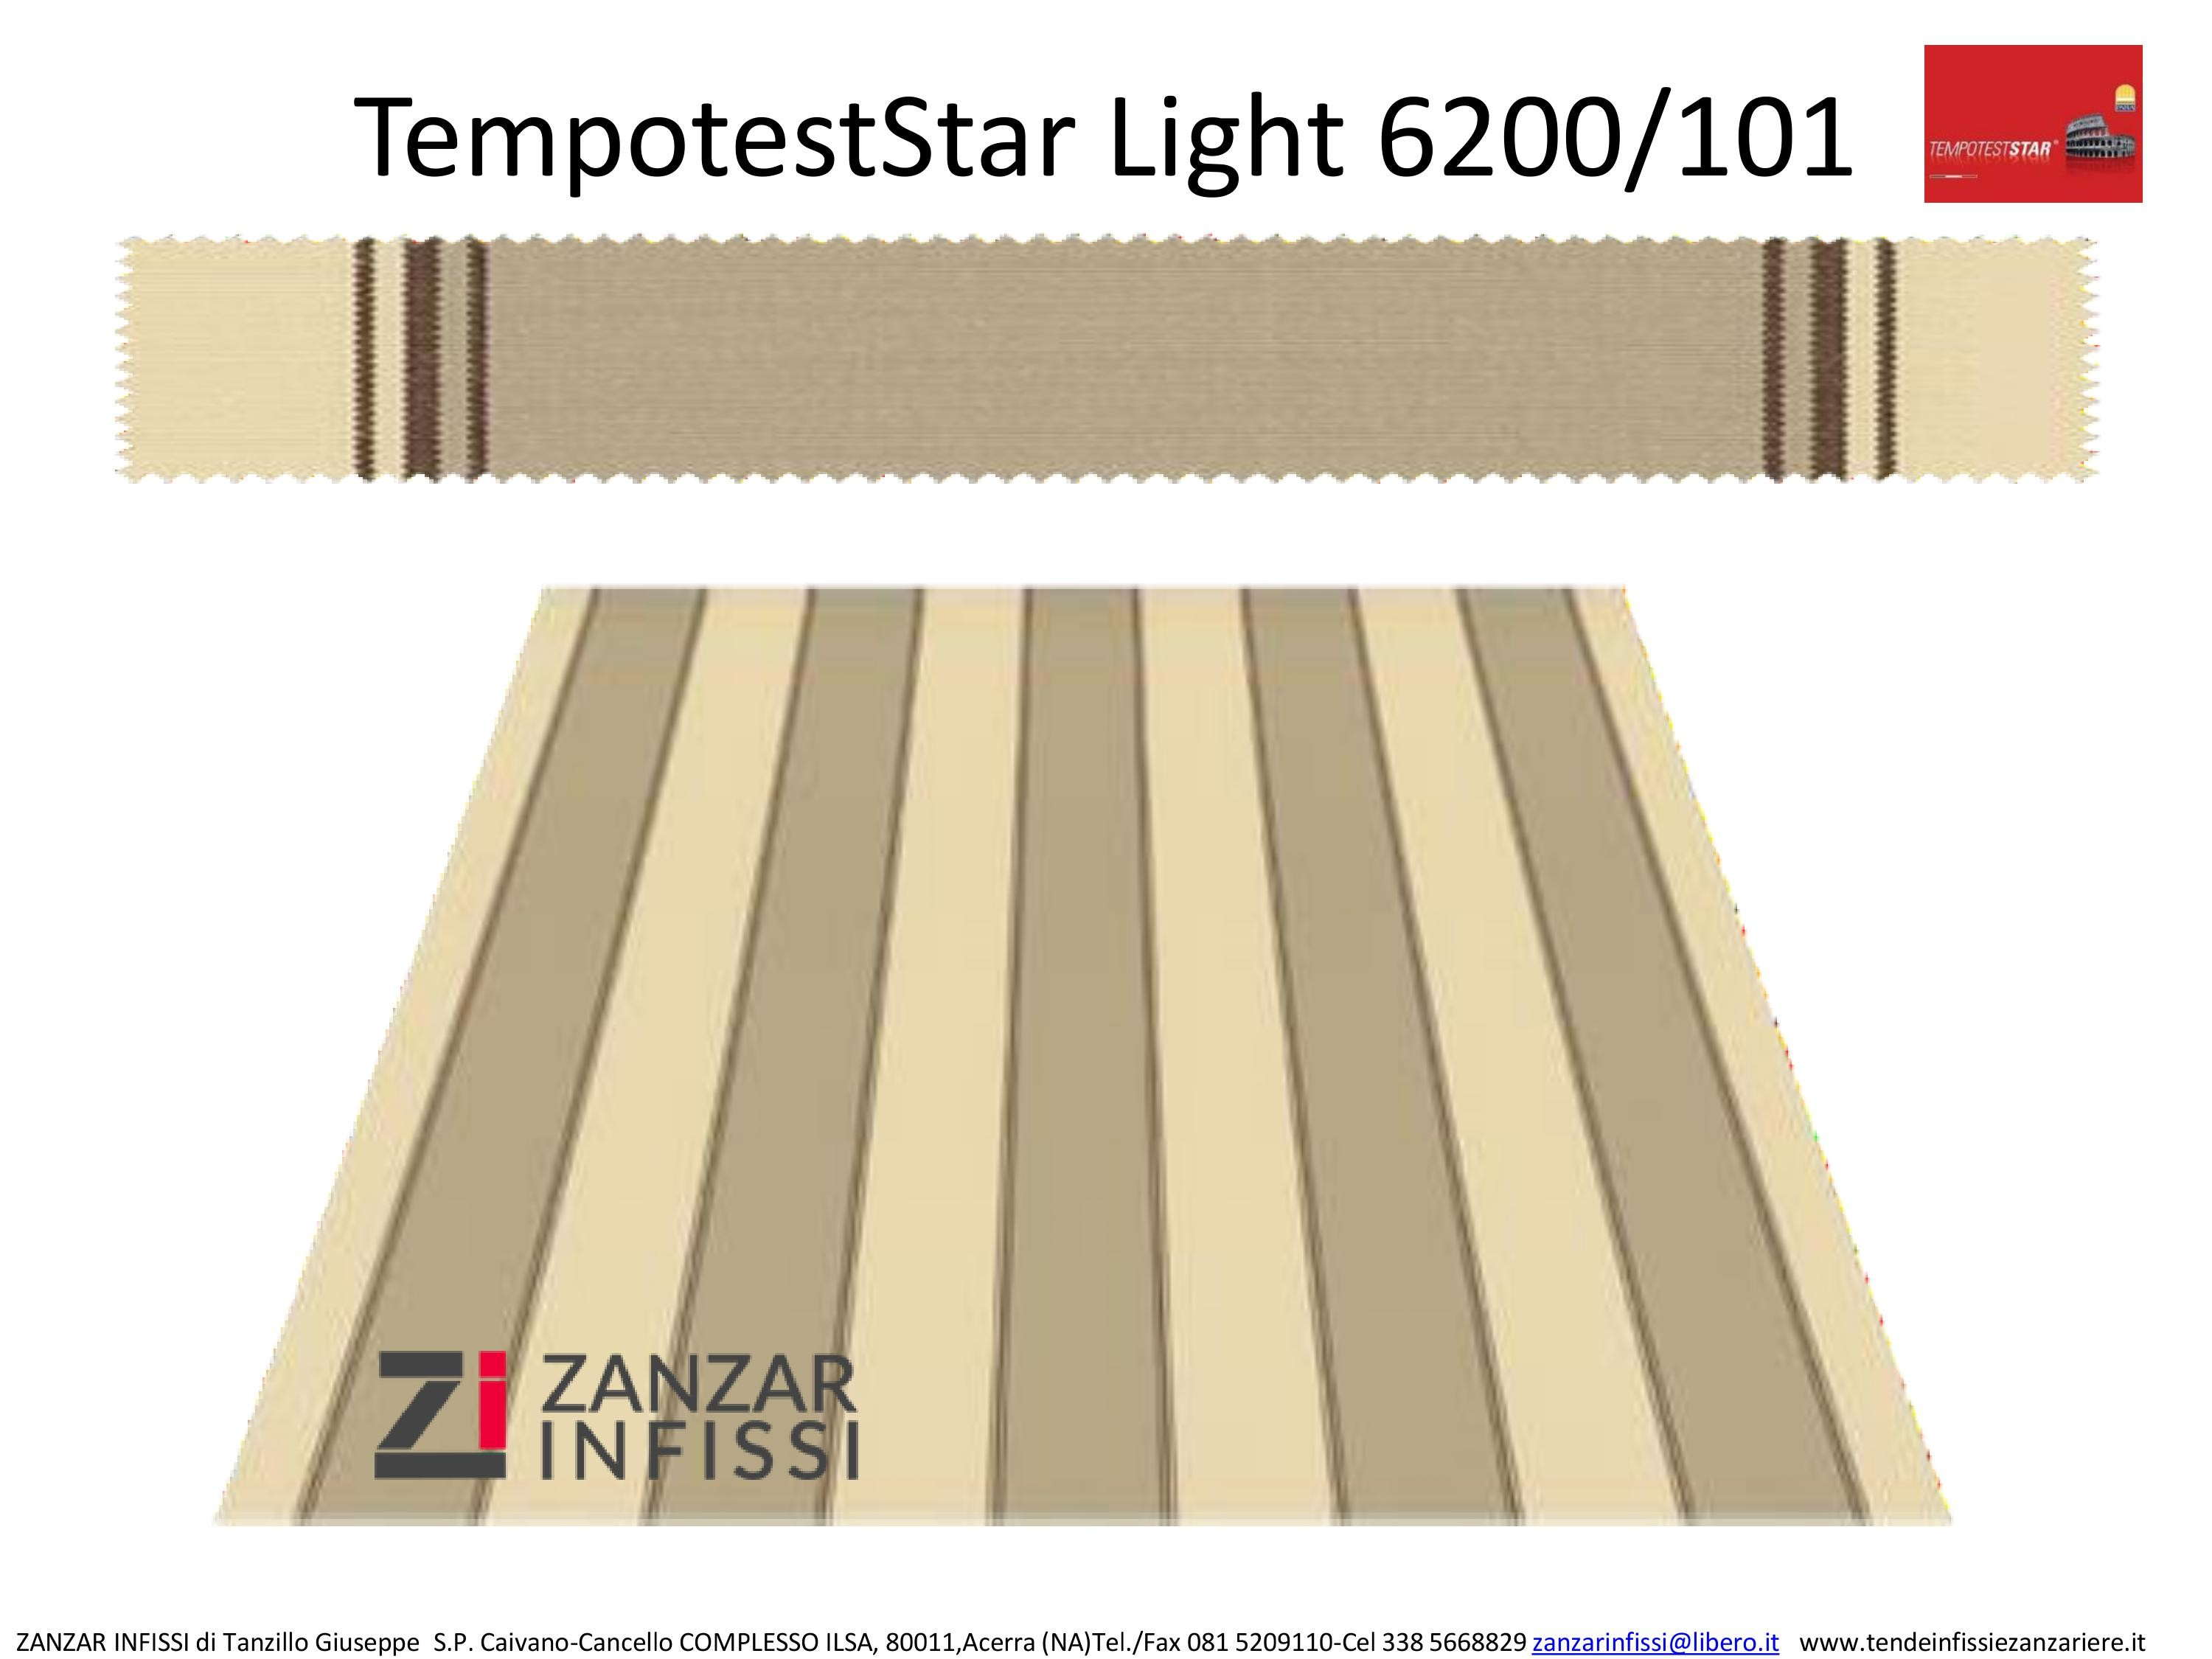 Tempotest star light 6200/101